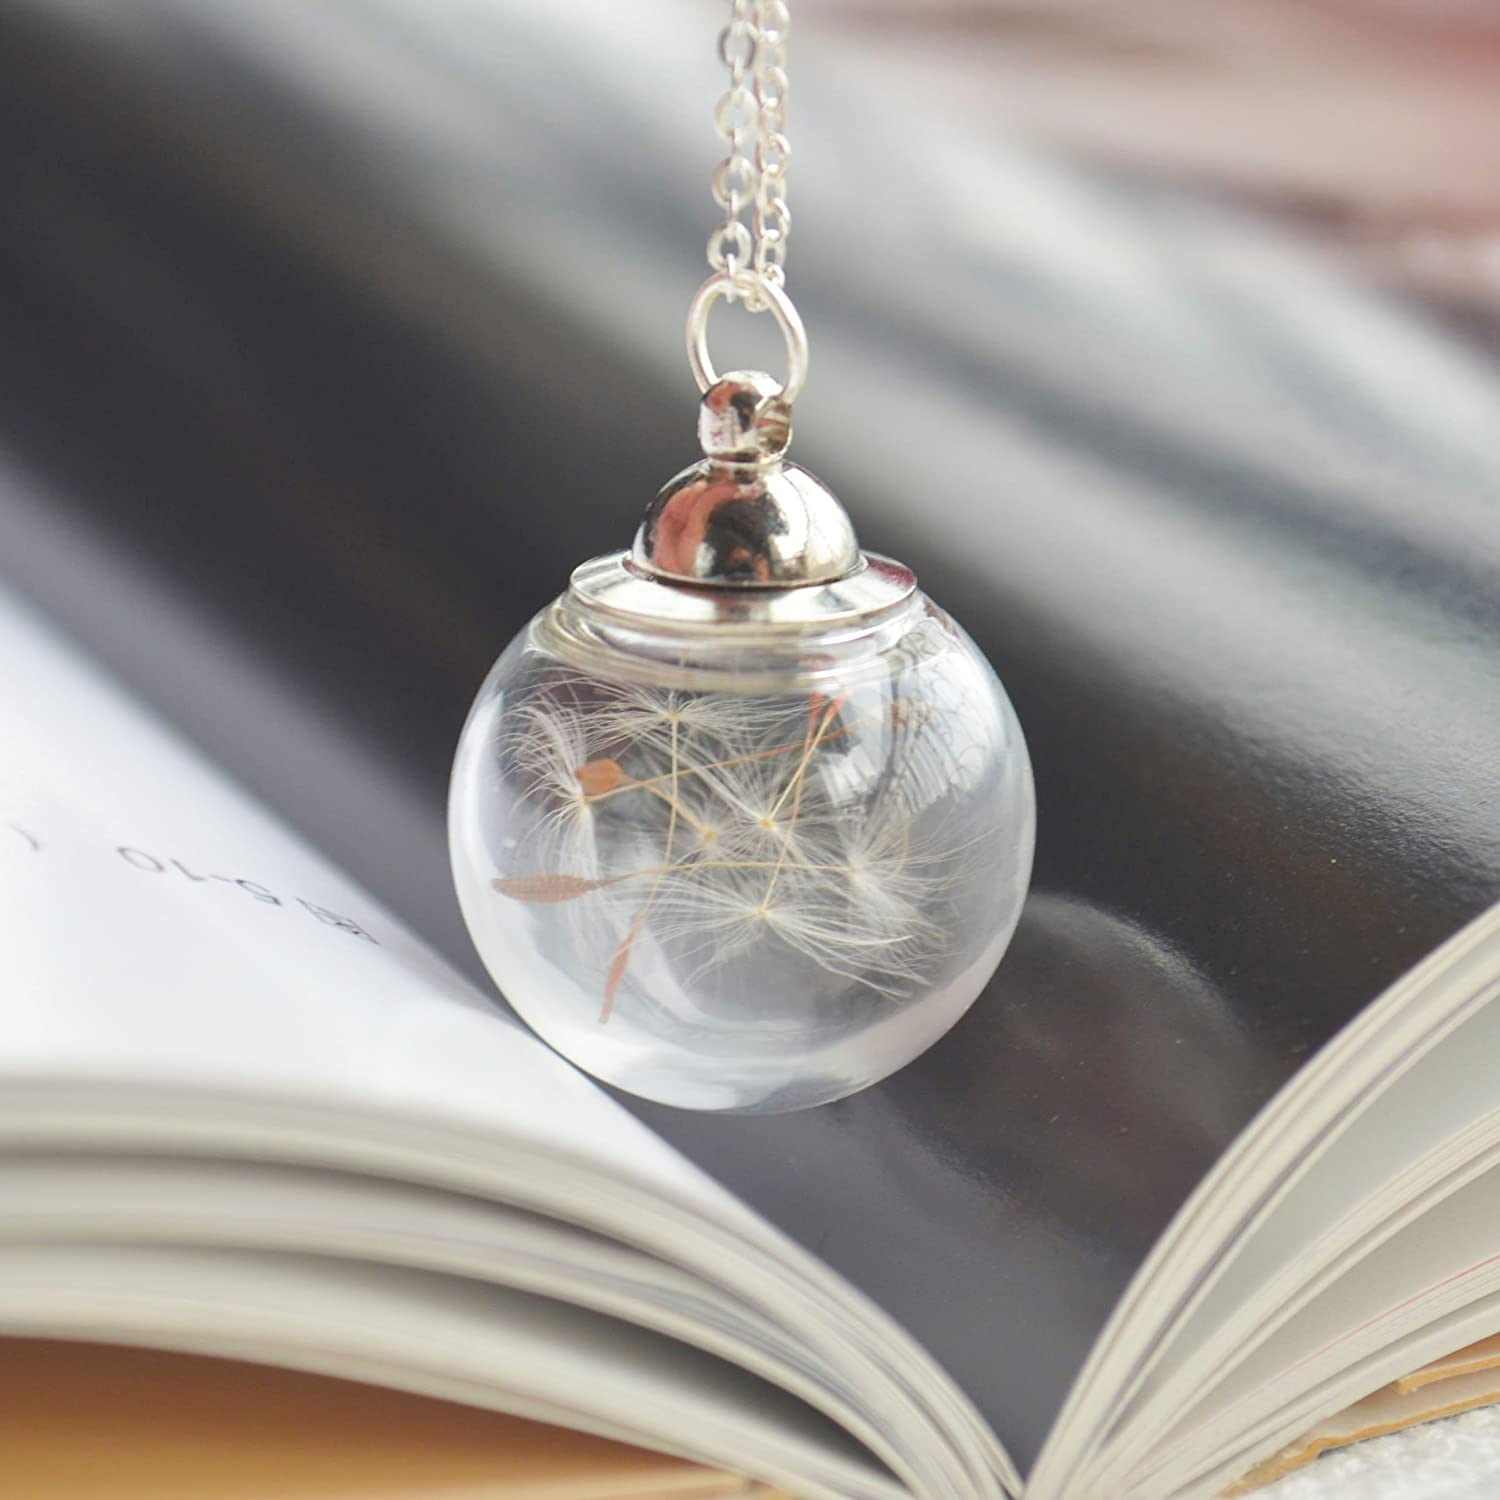 Dandelion Make a Wish Real Flower Open Screw Thread Big Glass Ball 925 Sterling Silver Necklace 17.7 Length